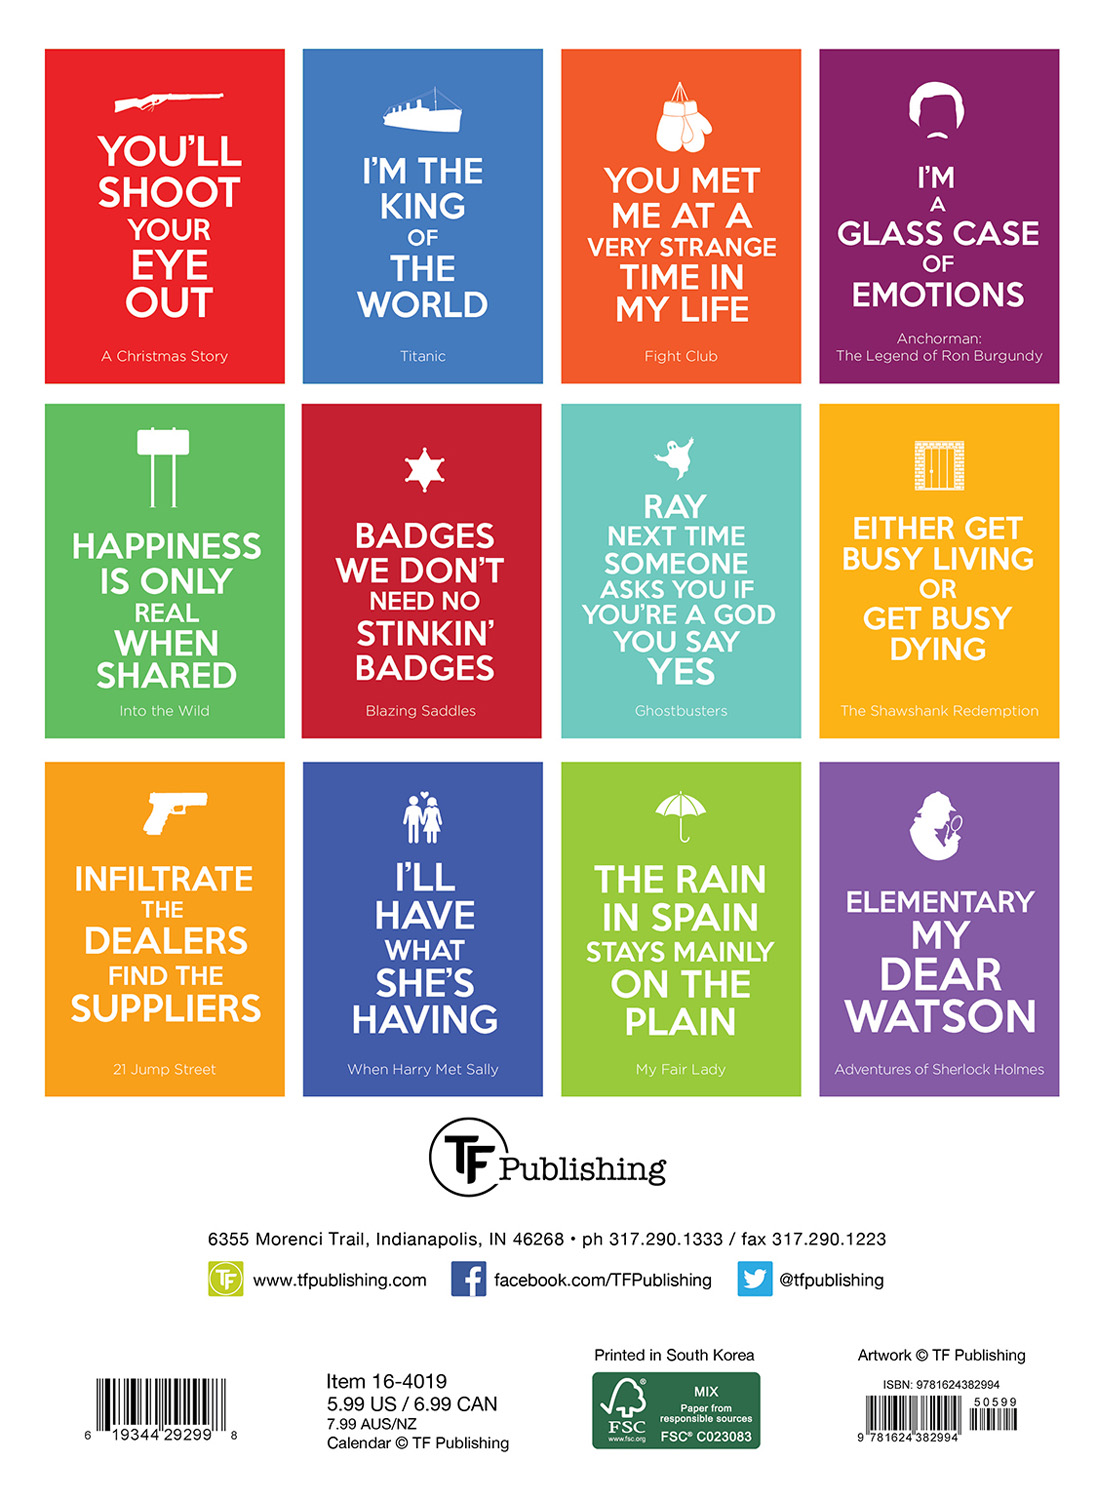 Calendar Planning Quotes : Keep calm quote movies planner calendar